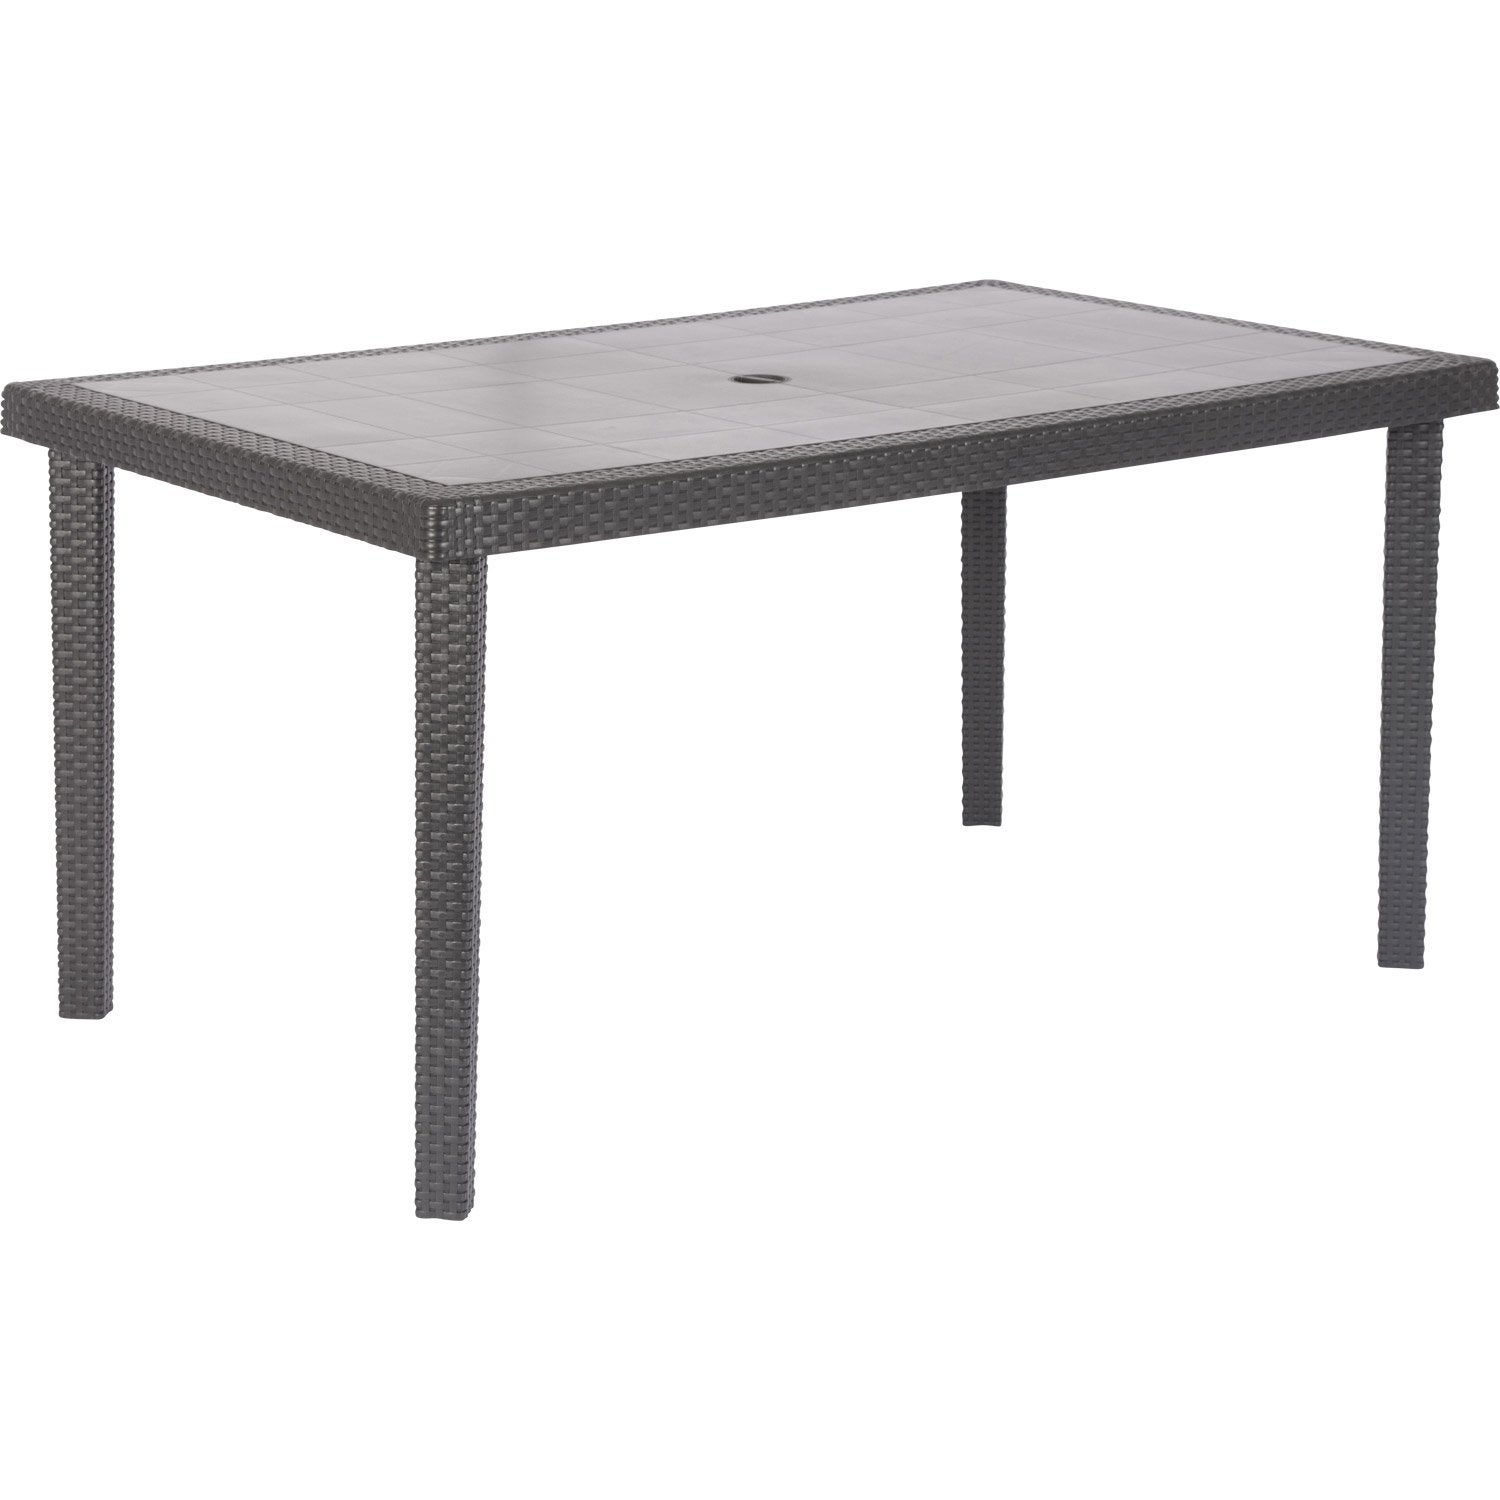 Table de jardin boh me rectangulaire anthracite 6 - Table plastique jardin carrefour ...